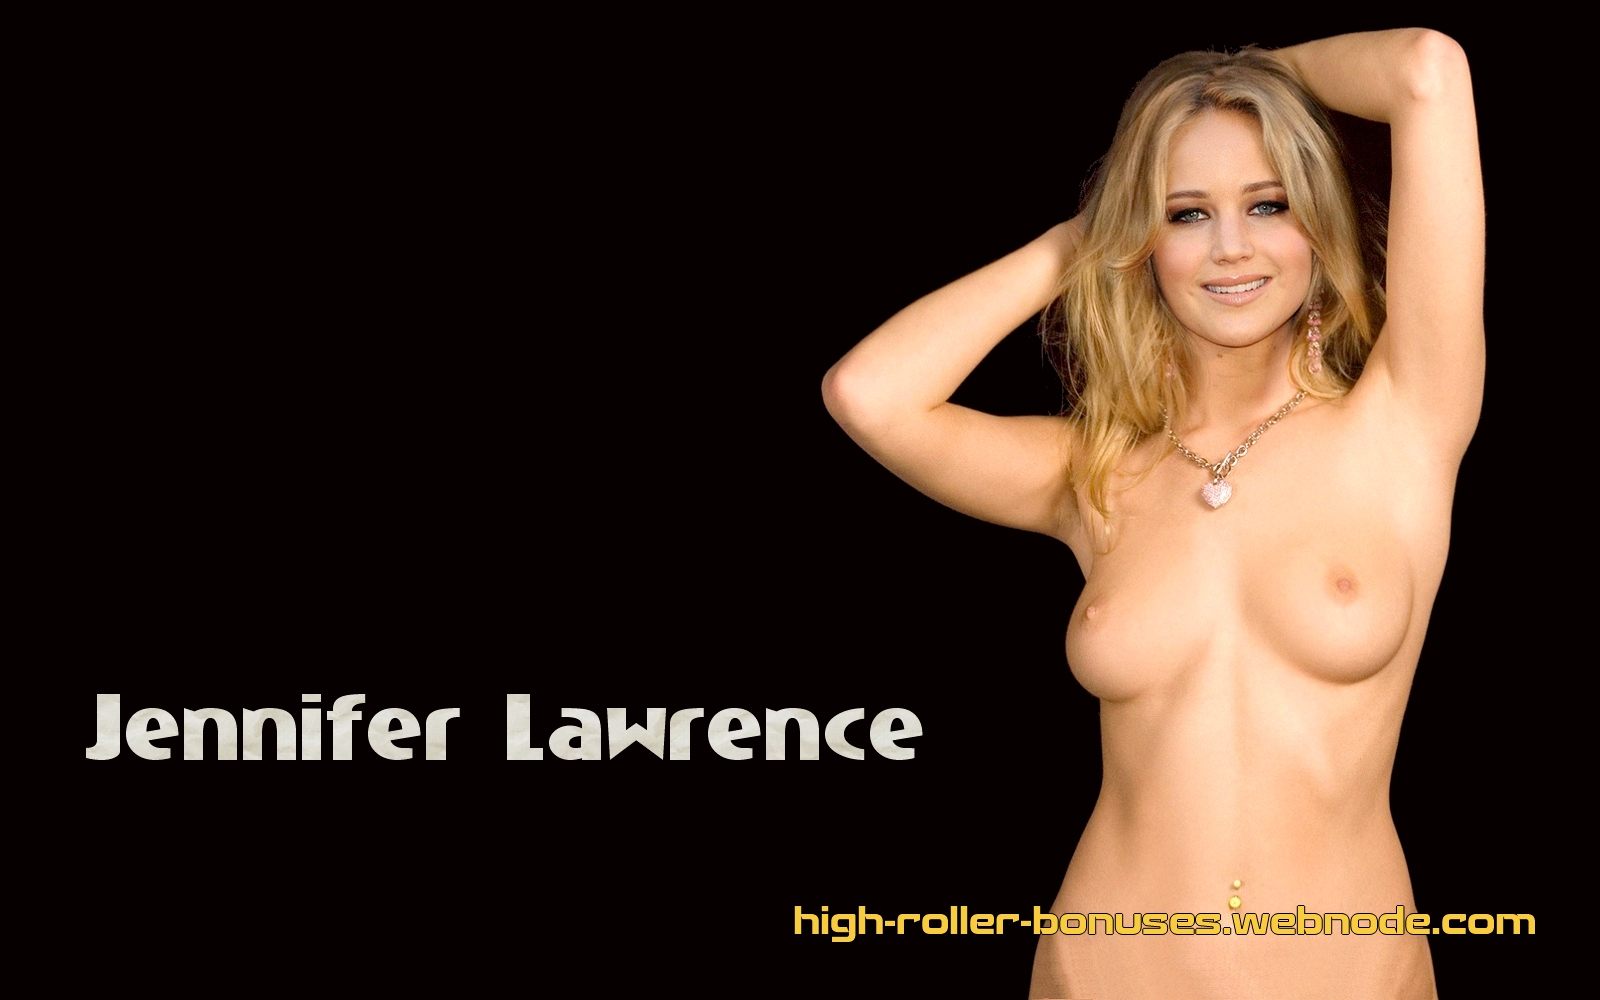 New Jennifer Lawrence Nude Pictures